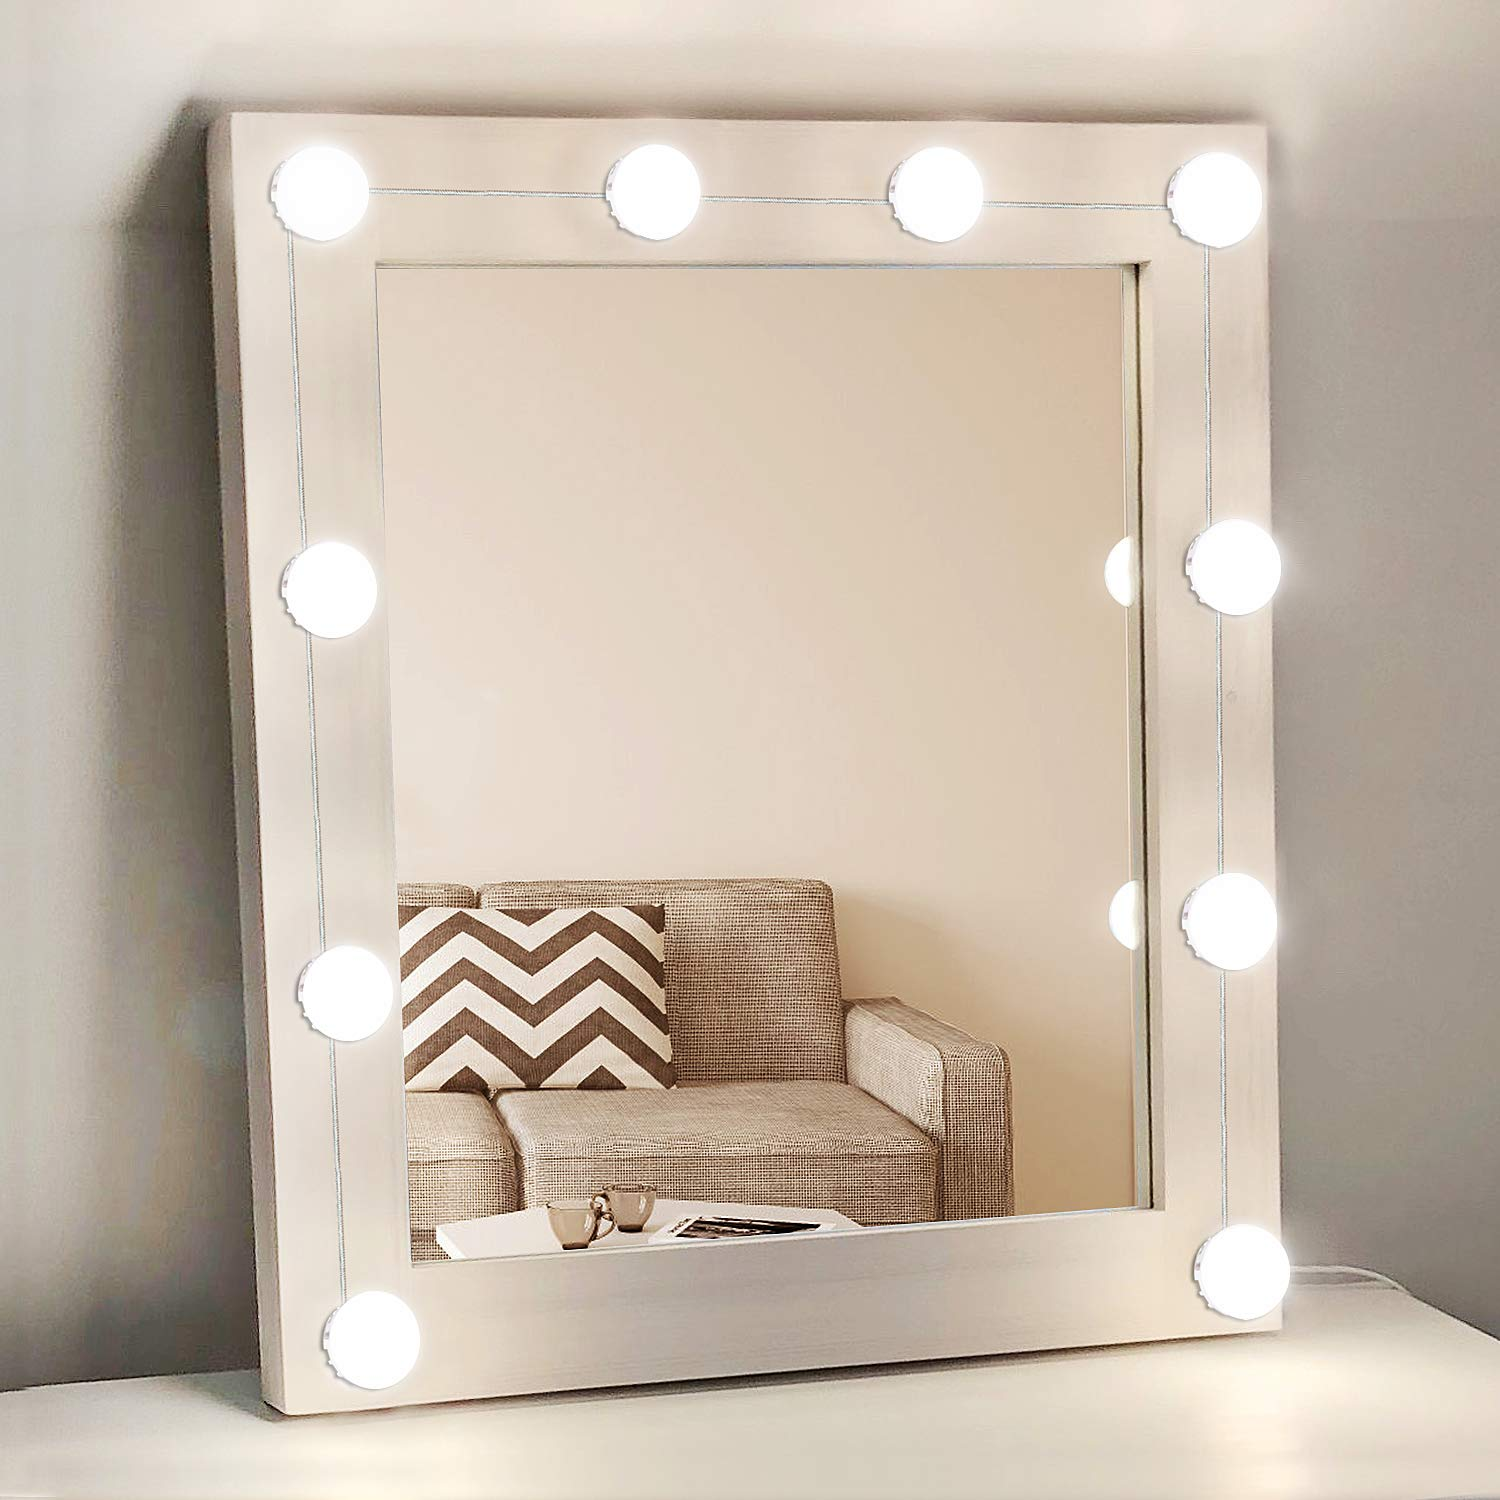 Hollywood Style Vanity Mirror Lights with 10 Dimmable LED Light Bulbs, USB Powered Lighting Fixture Strip for Makeup Vanity Table Set in Dressing Room(Mirror Not Included) (10 Bulbs)